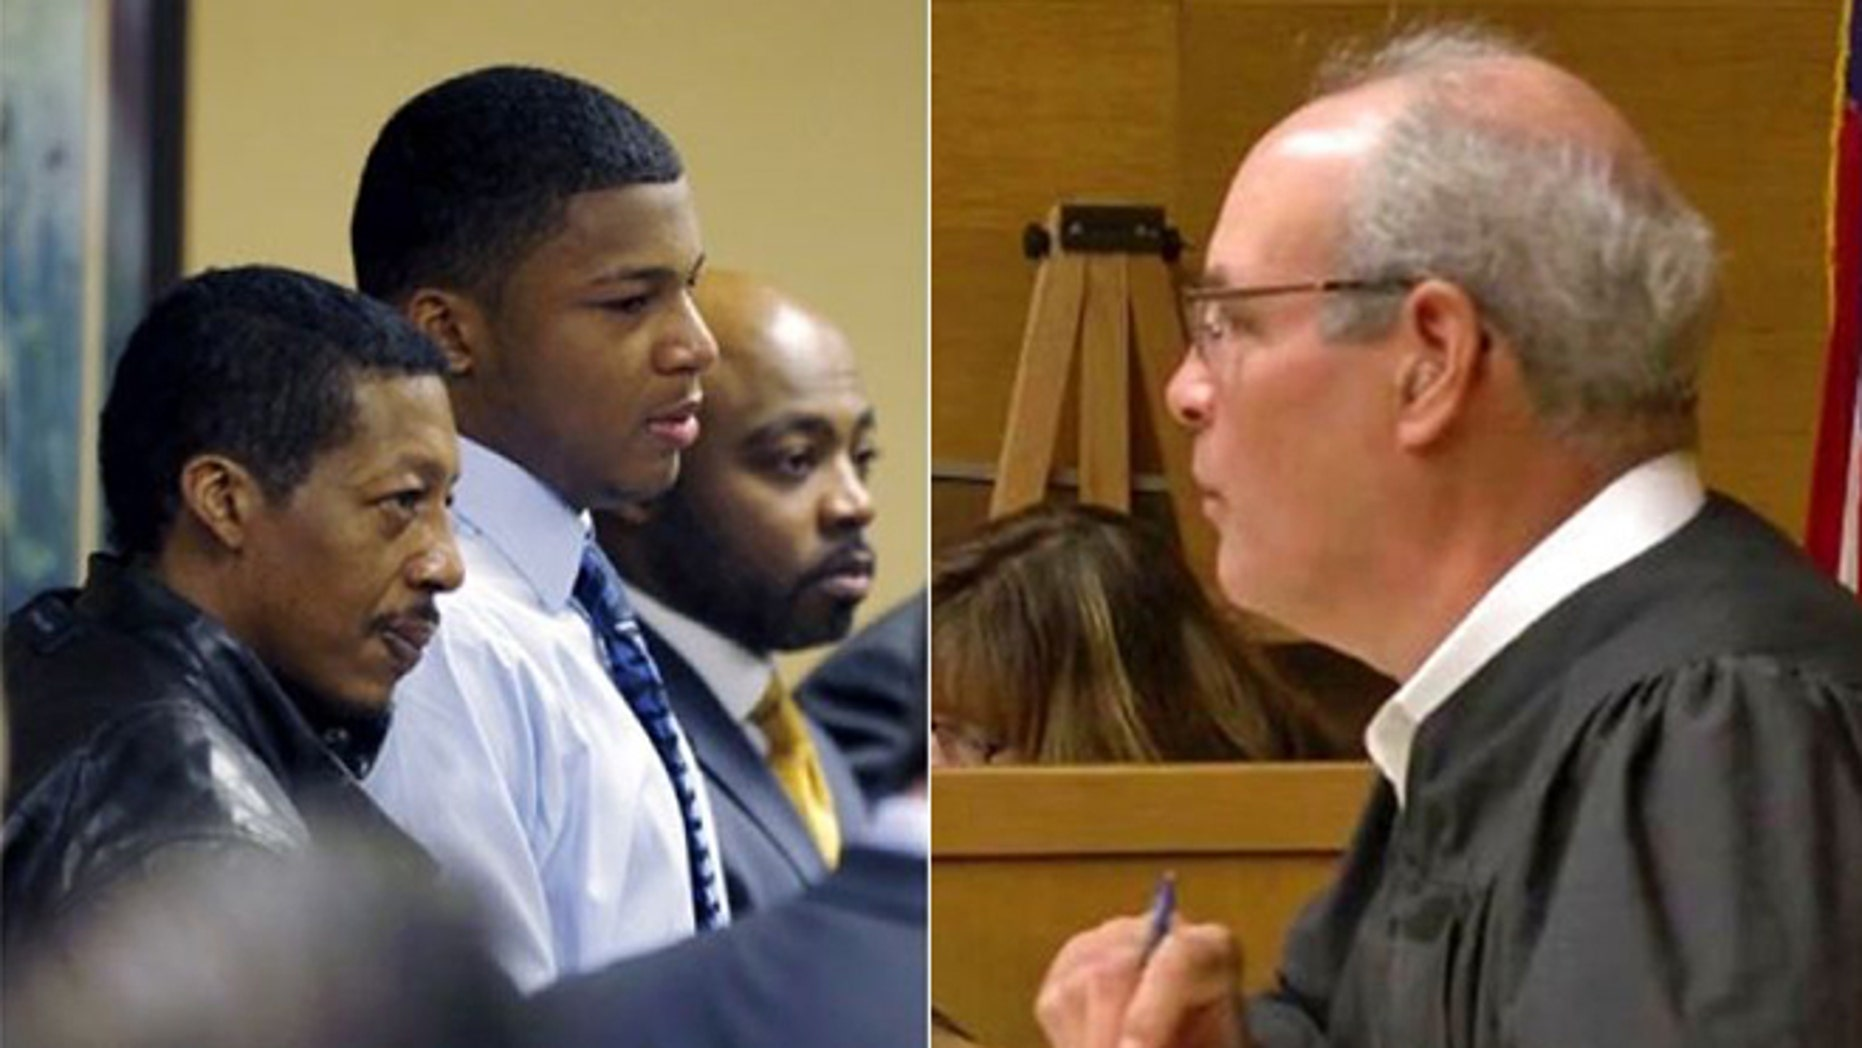 Jefferson County Judge Joseph Bruzzese Jr., right, was shot while walking toward a courthouse in Ohio Monday. The gunman was identified as Nathaniel Richmond, seen wearing black at left, with his son, Ma'lik Richmond, and attorney Walter Madison in 2013.